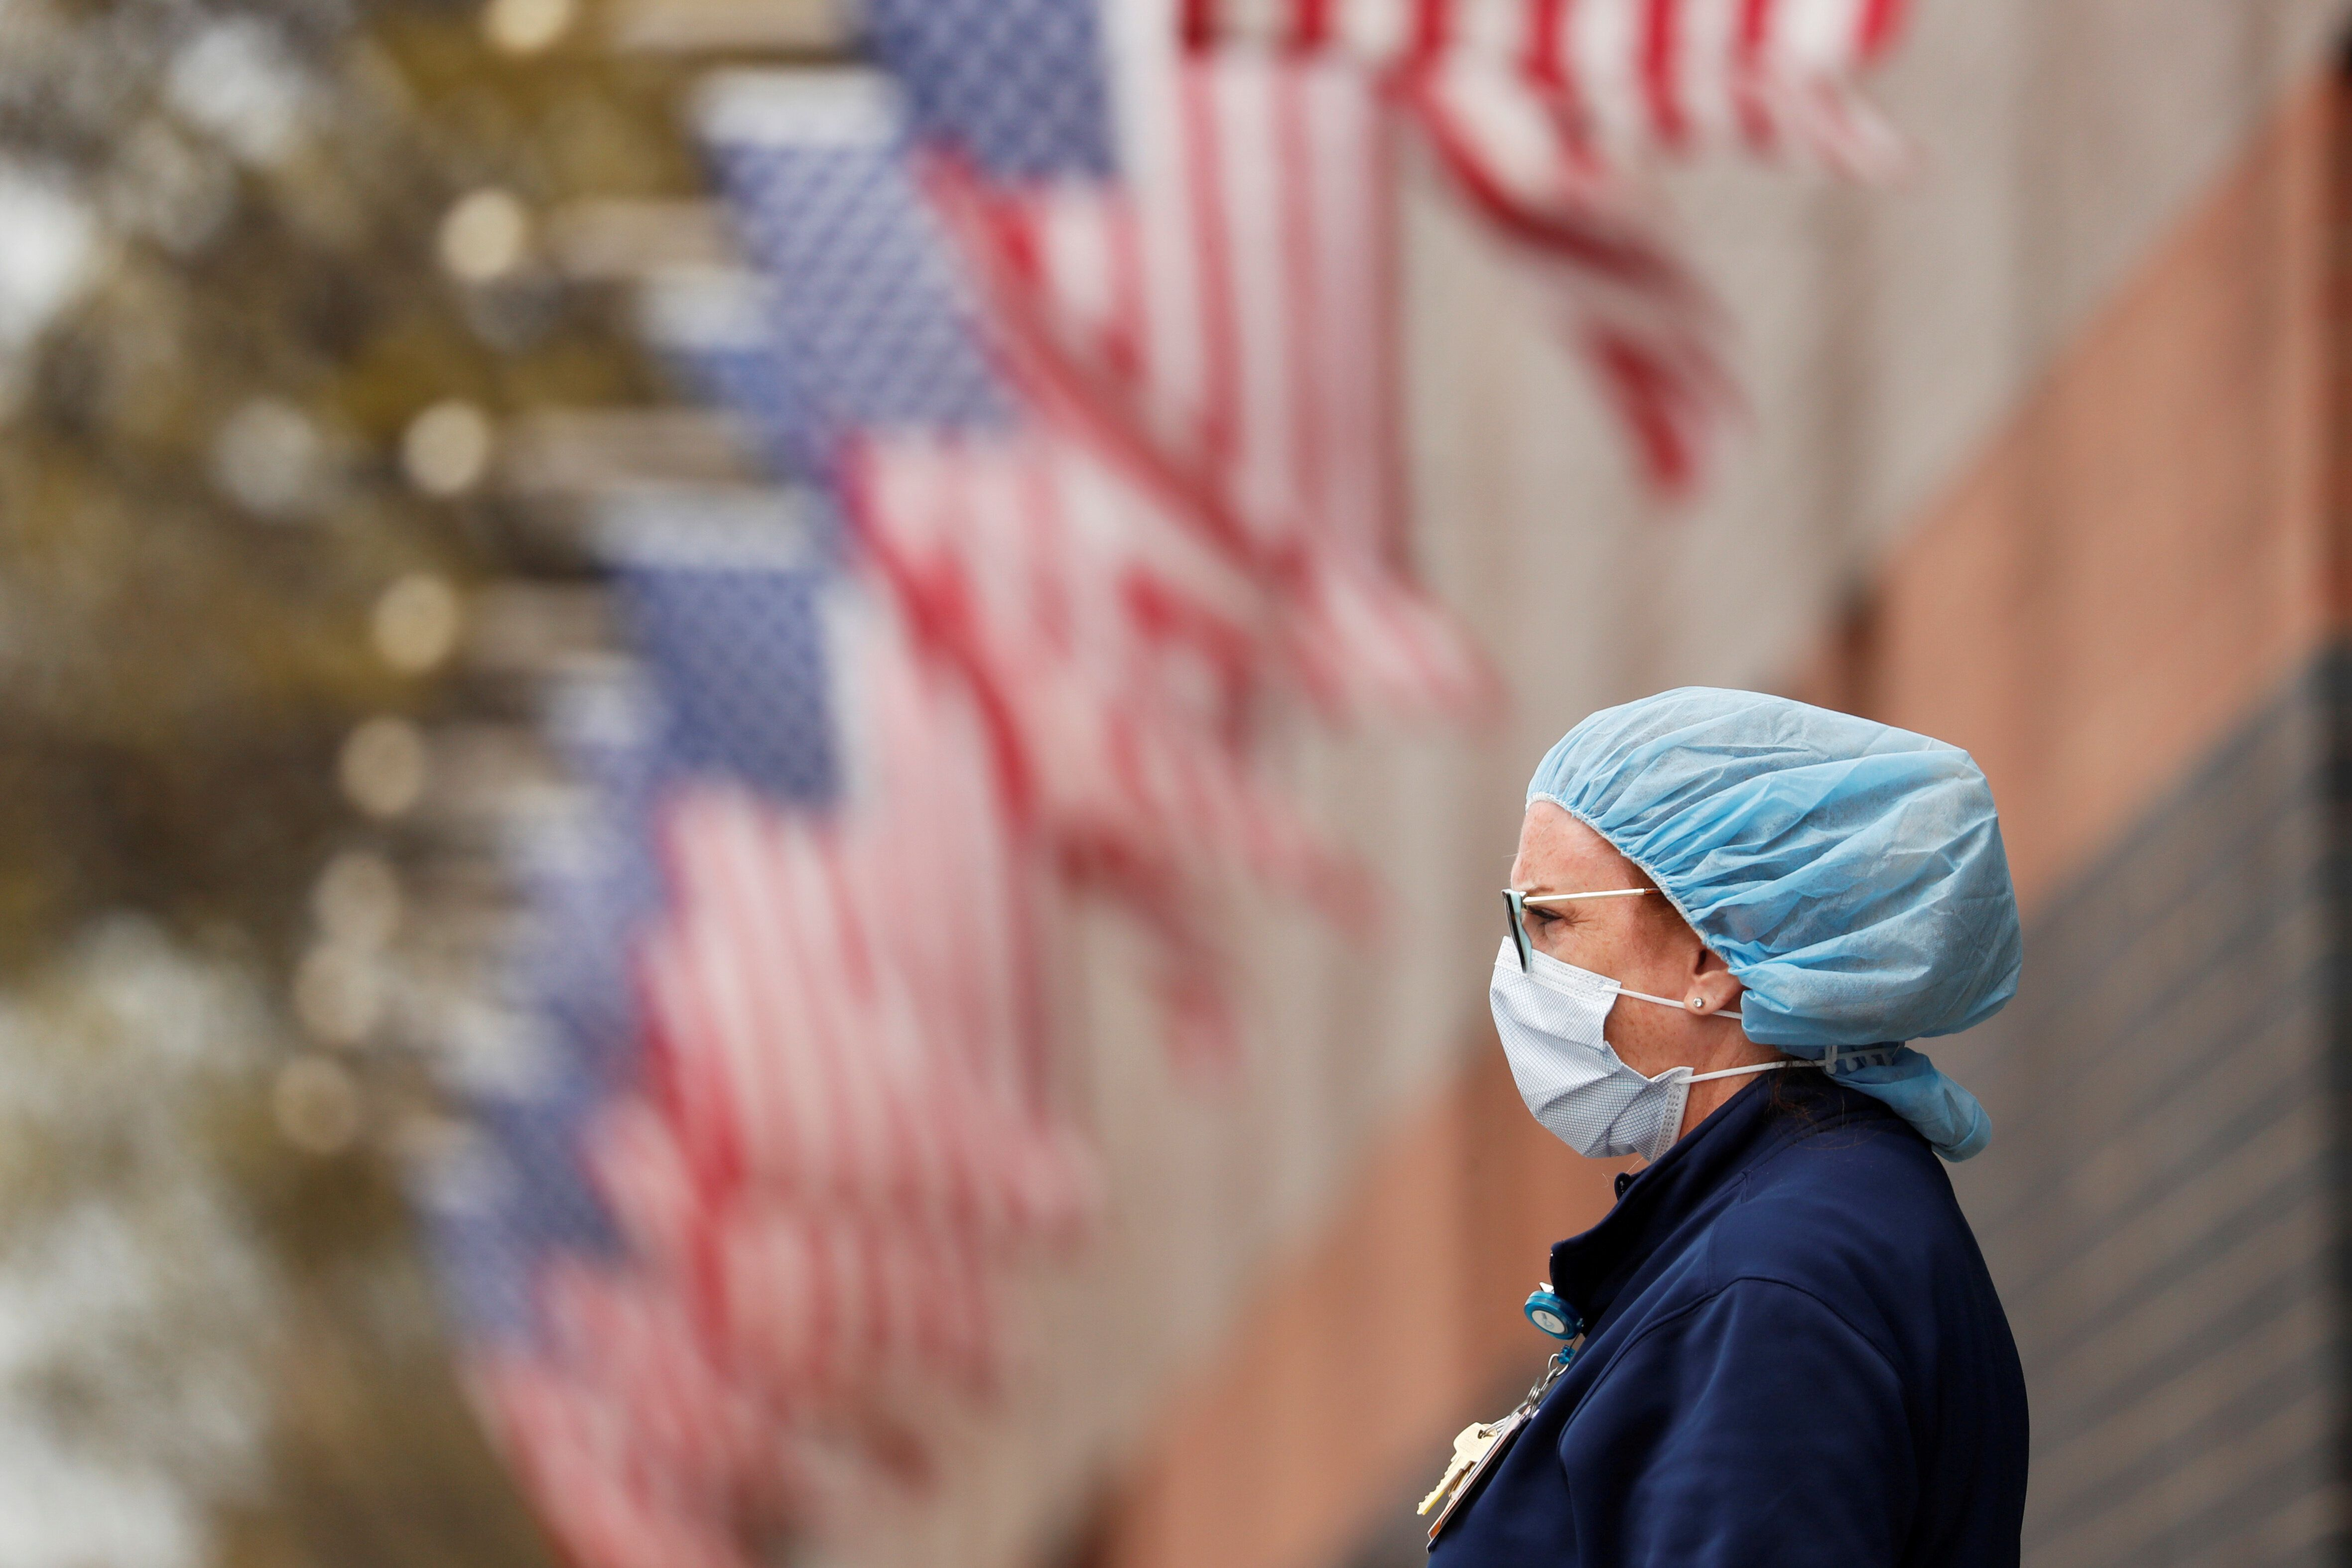 %name As U.S. Surpasses 200,000 COVID 19 Deaths, Experts Warn Of Perfect Storm Flu Season